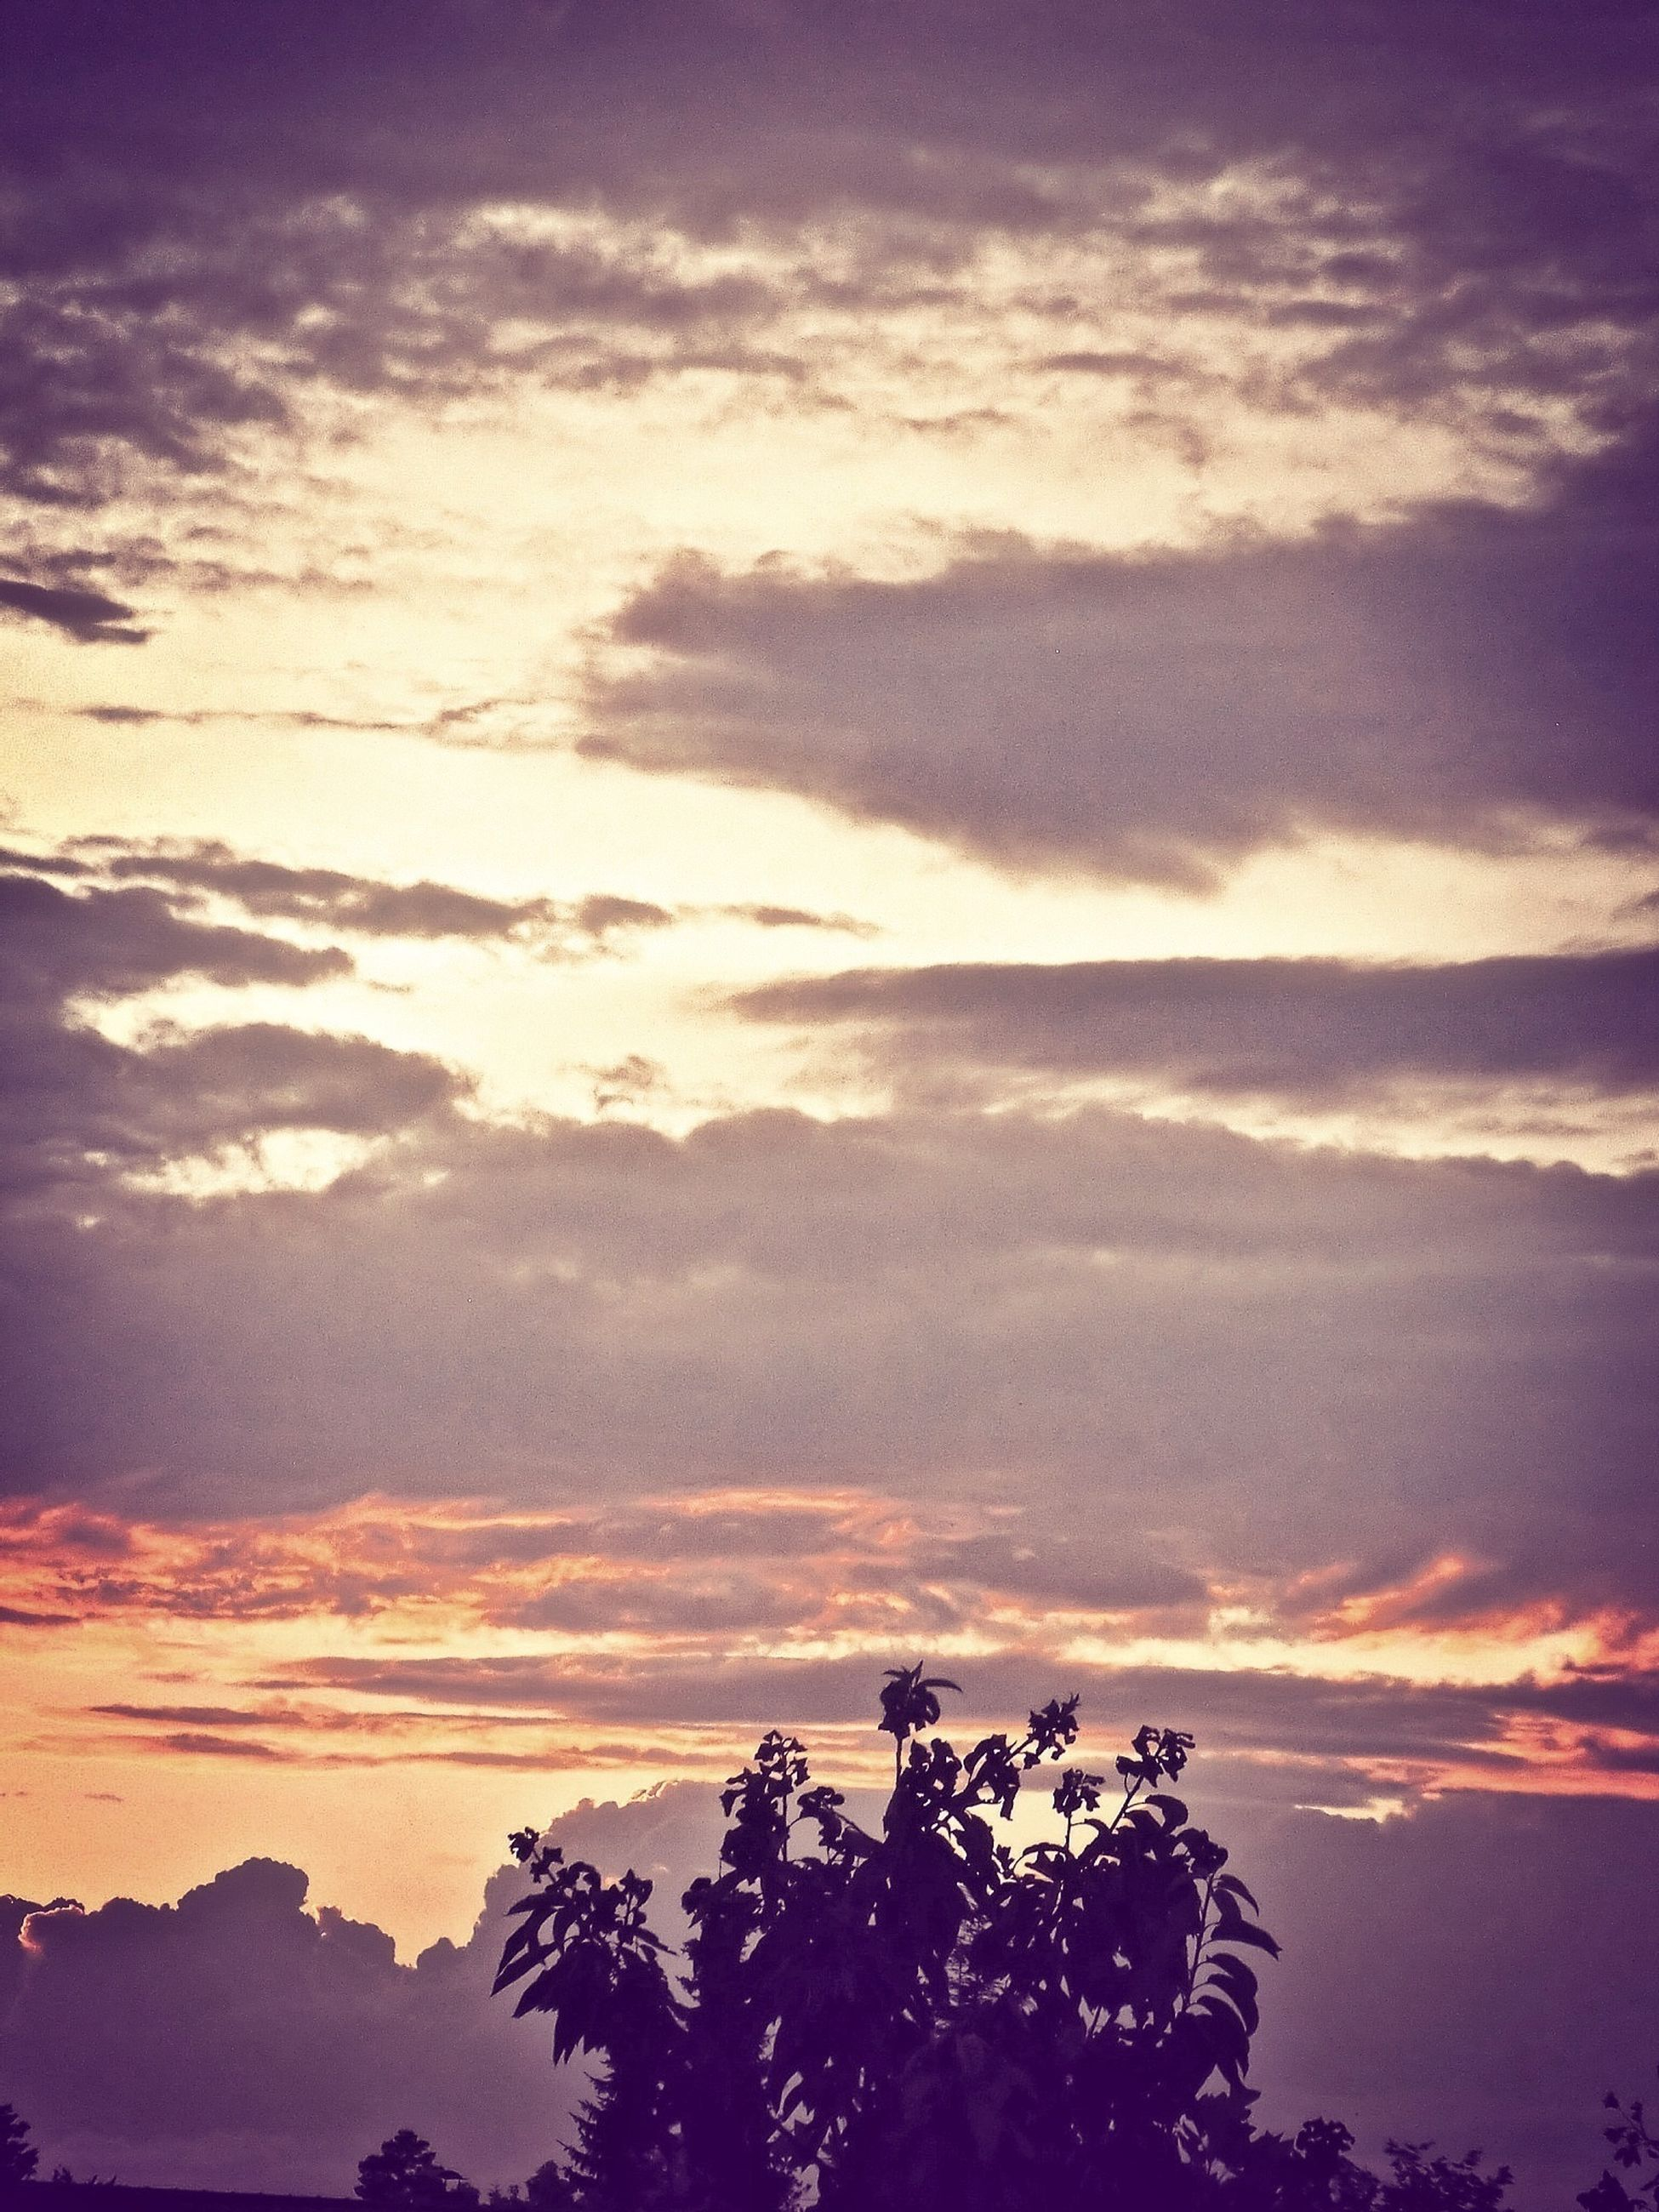 tree, scenics, tranquility, silhouette, beauty in nature, tranquil scene, sunset, sky, cloud - sky, nature, idyllic, low angle view, orange color, cloud, dramatic sky, majestic, outdoors, no people, non-urban scene, weather